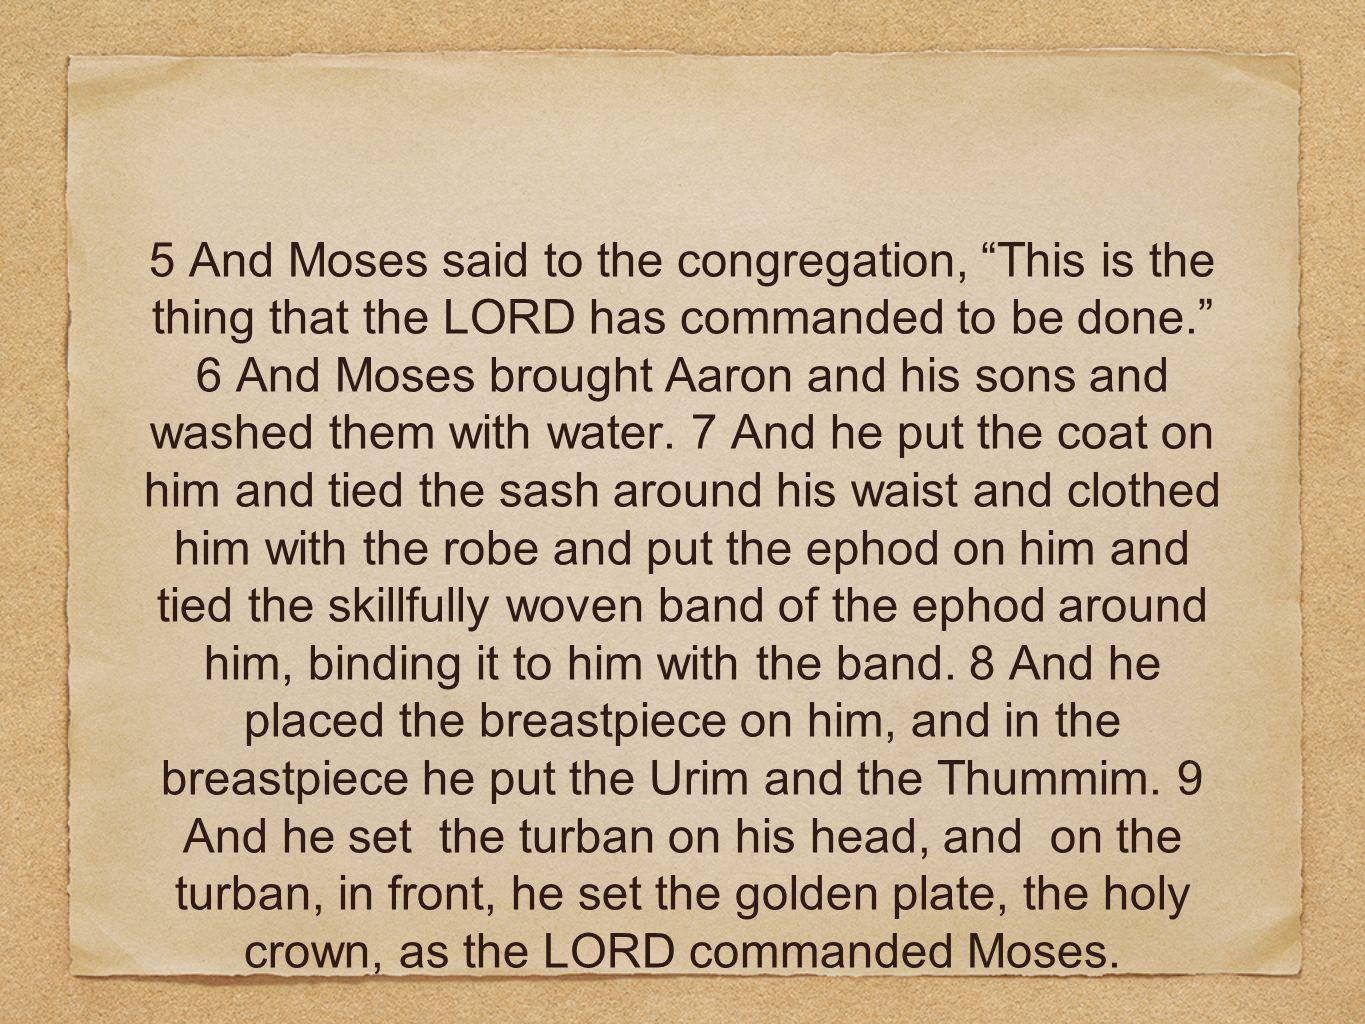 5 And Moses said to the congregation, This is the thing that the LORD has commanded to be done. 6 And Moses brought Aaron and his sons and washed them with water.